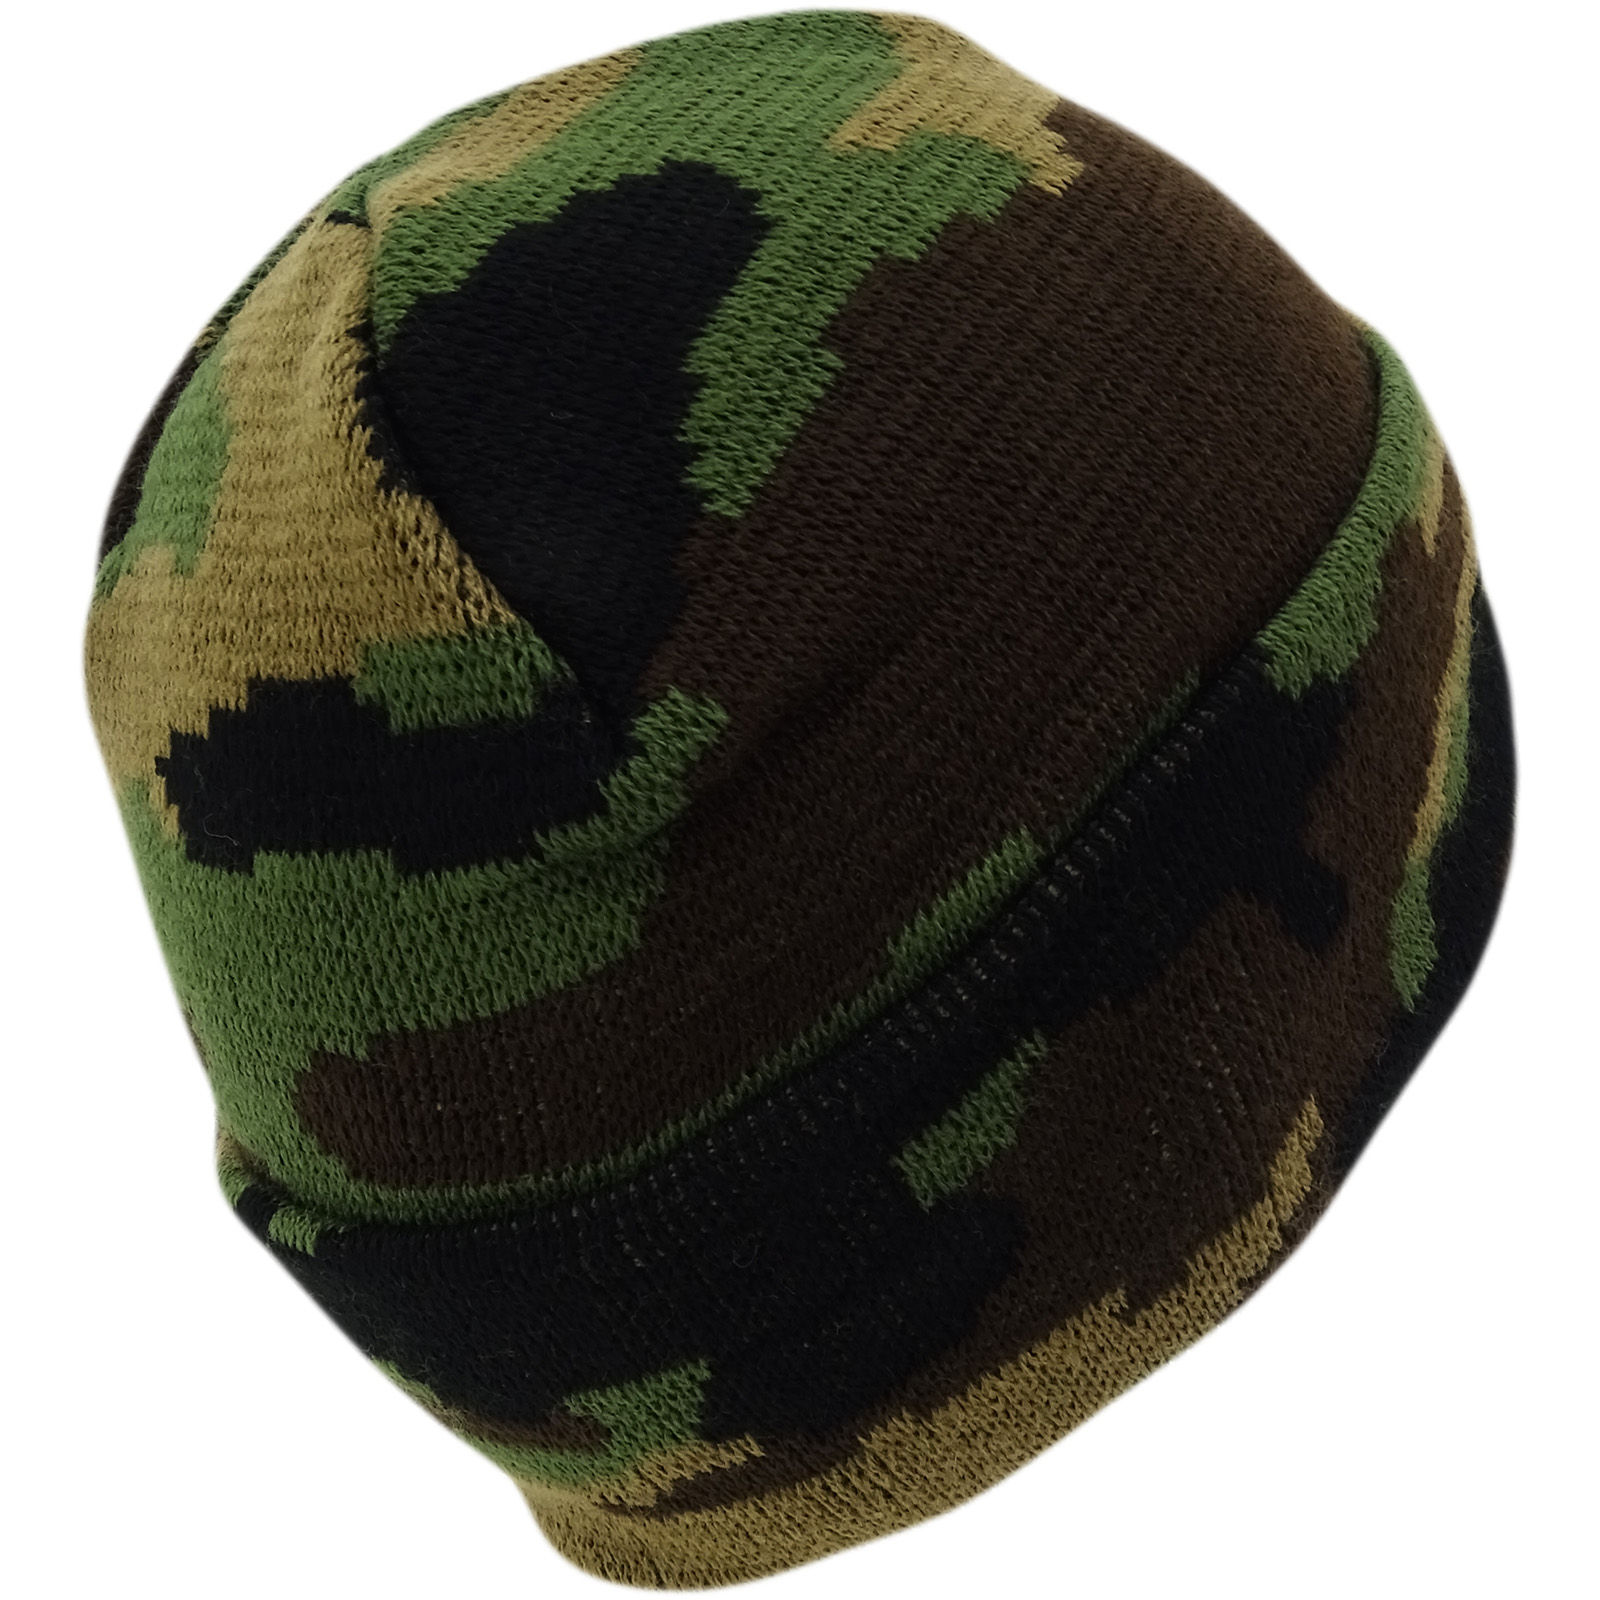 b70f9b7f6ca Sentinel Hype Multi Camouflage Winter Beanie   Winter Headwear - Forest Camo